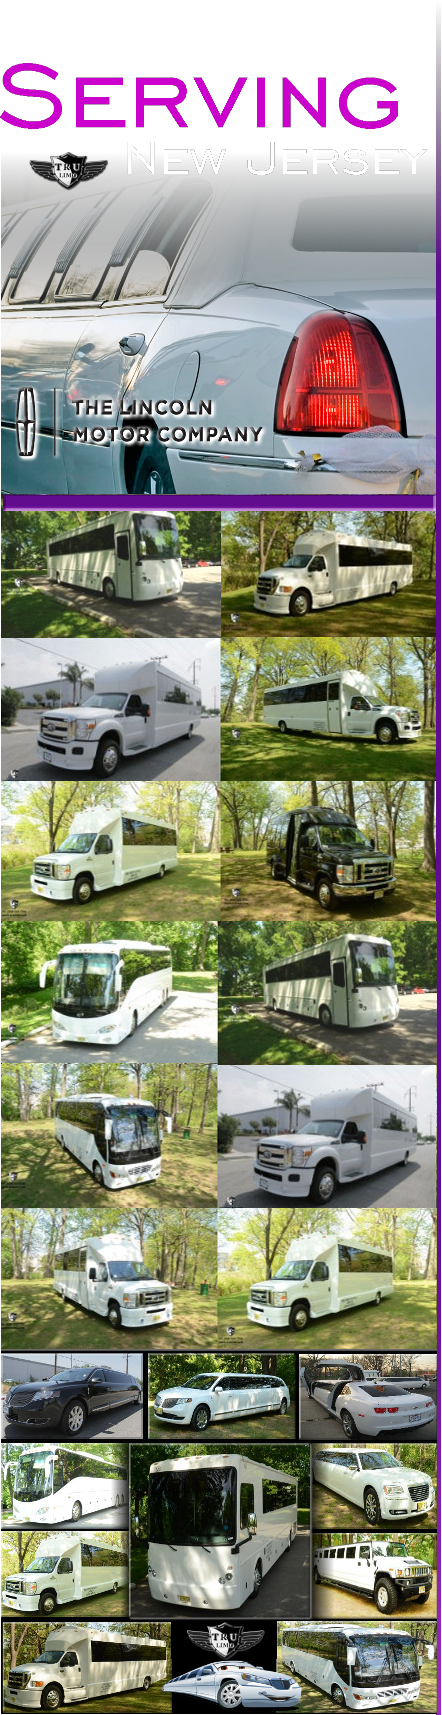 nj townships party bus limos Party Bus NJ Limo Service